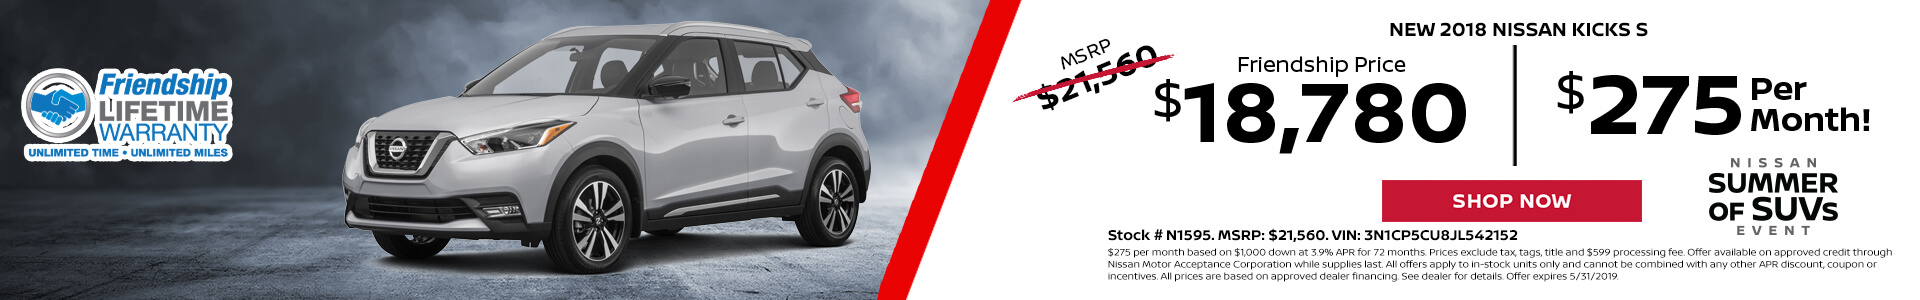 Nissan Kicks $19,554 Purchase